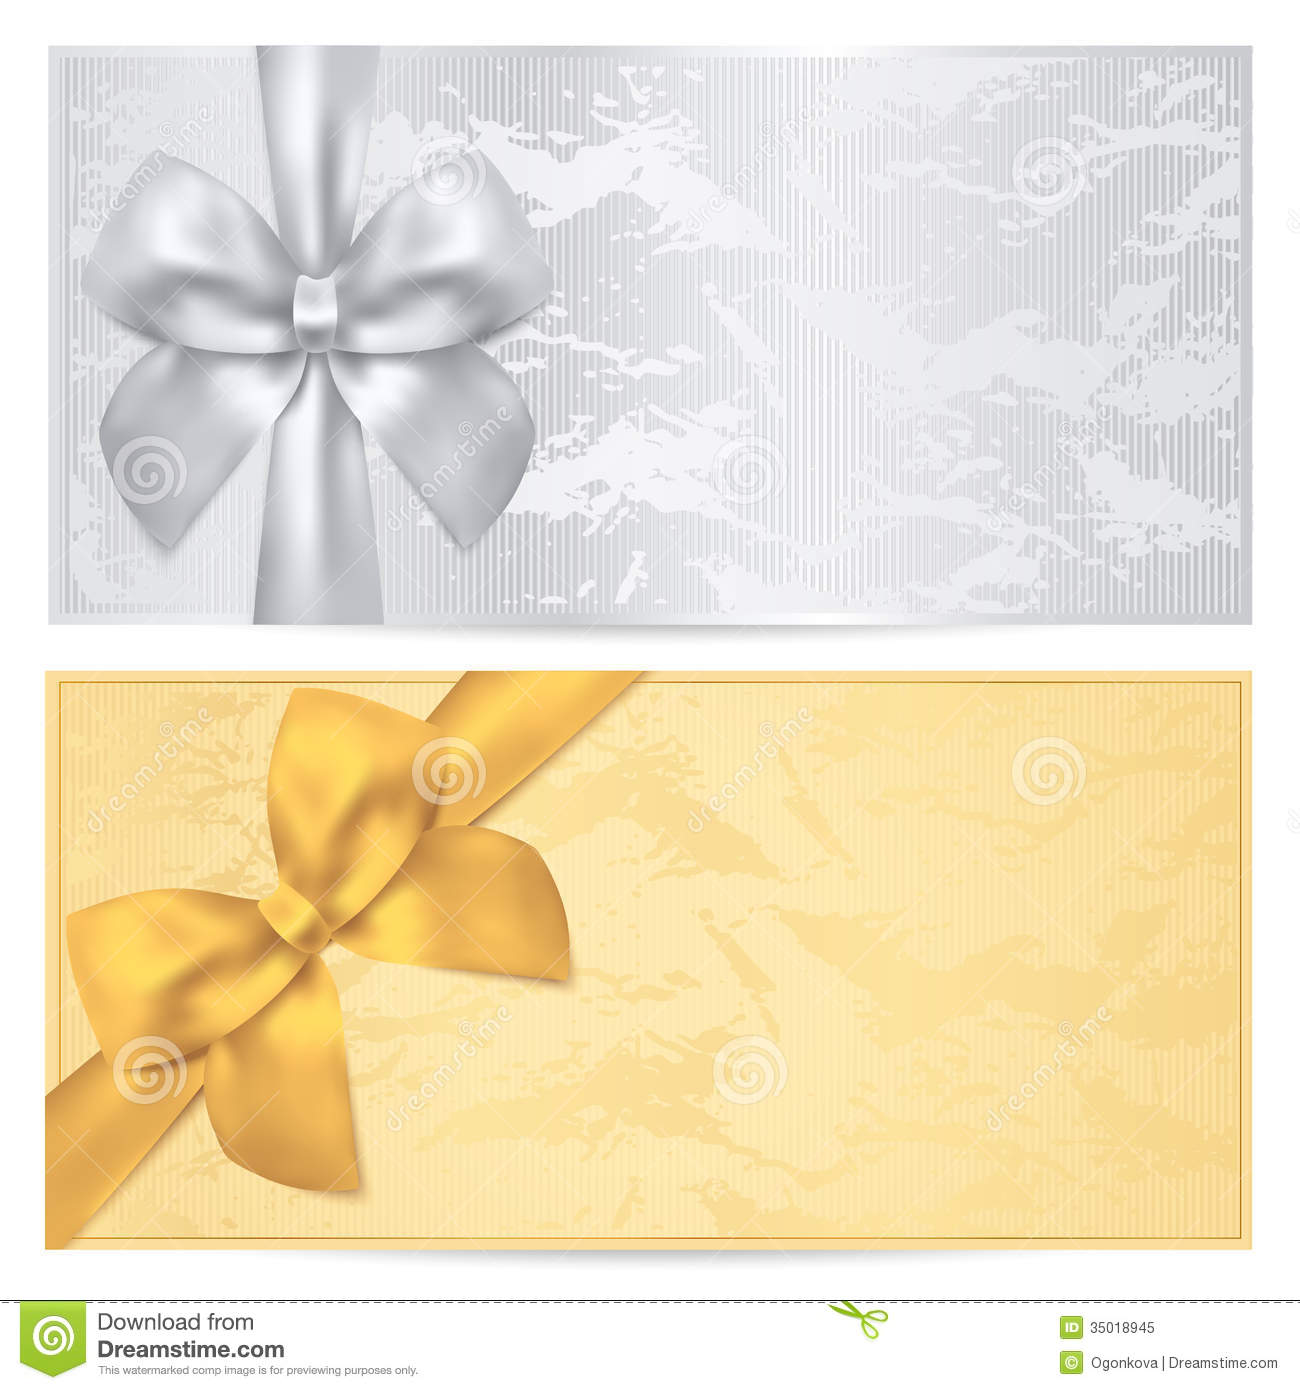 Gift certificate voucher coupon template bow f cartoon vector gift certificate voucher coupon template bow f cartoon vector cartoondealer 35566371 yadclub Images